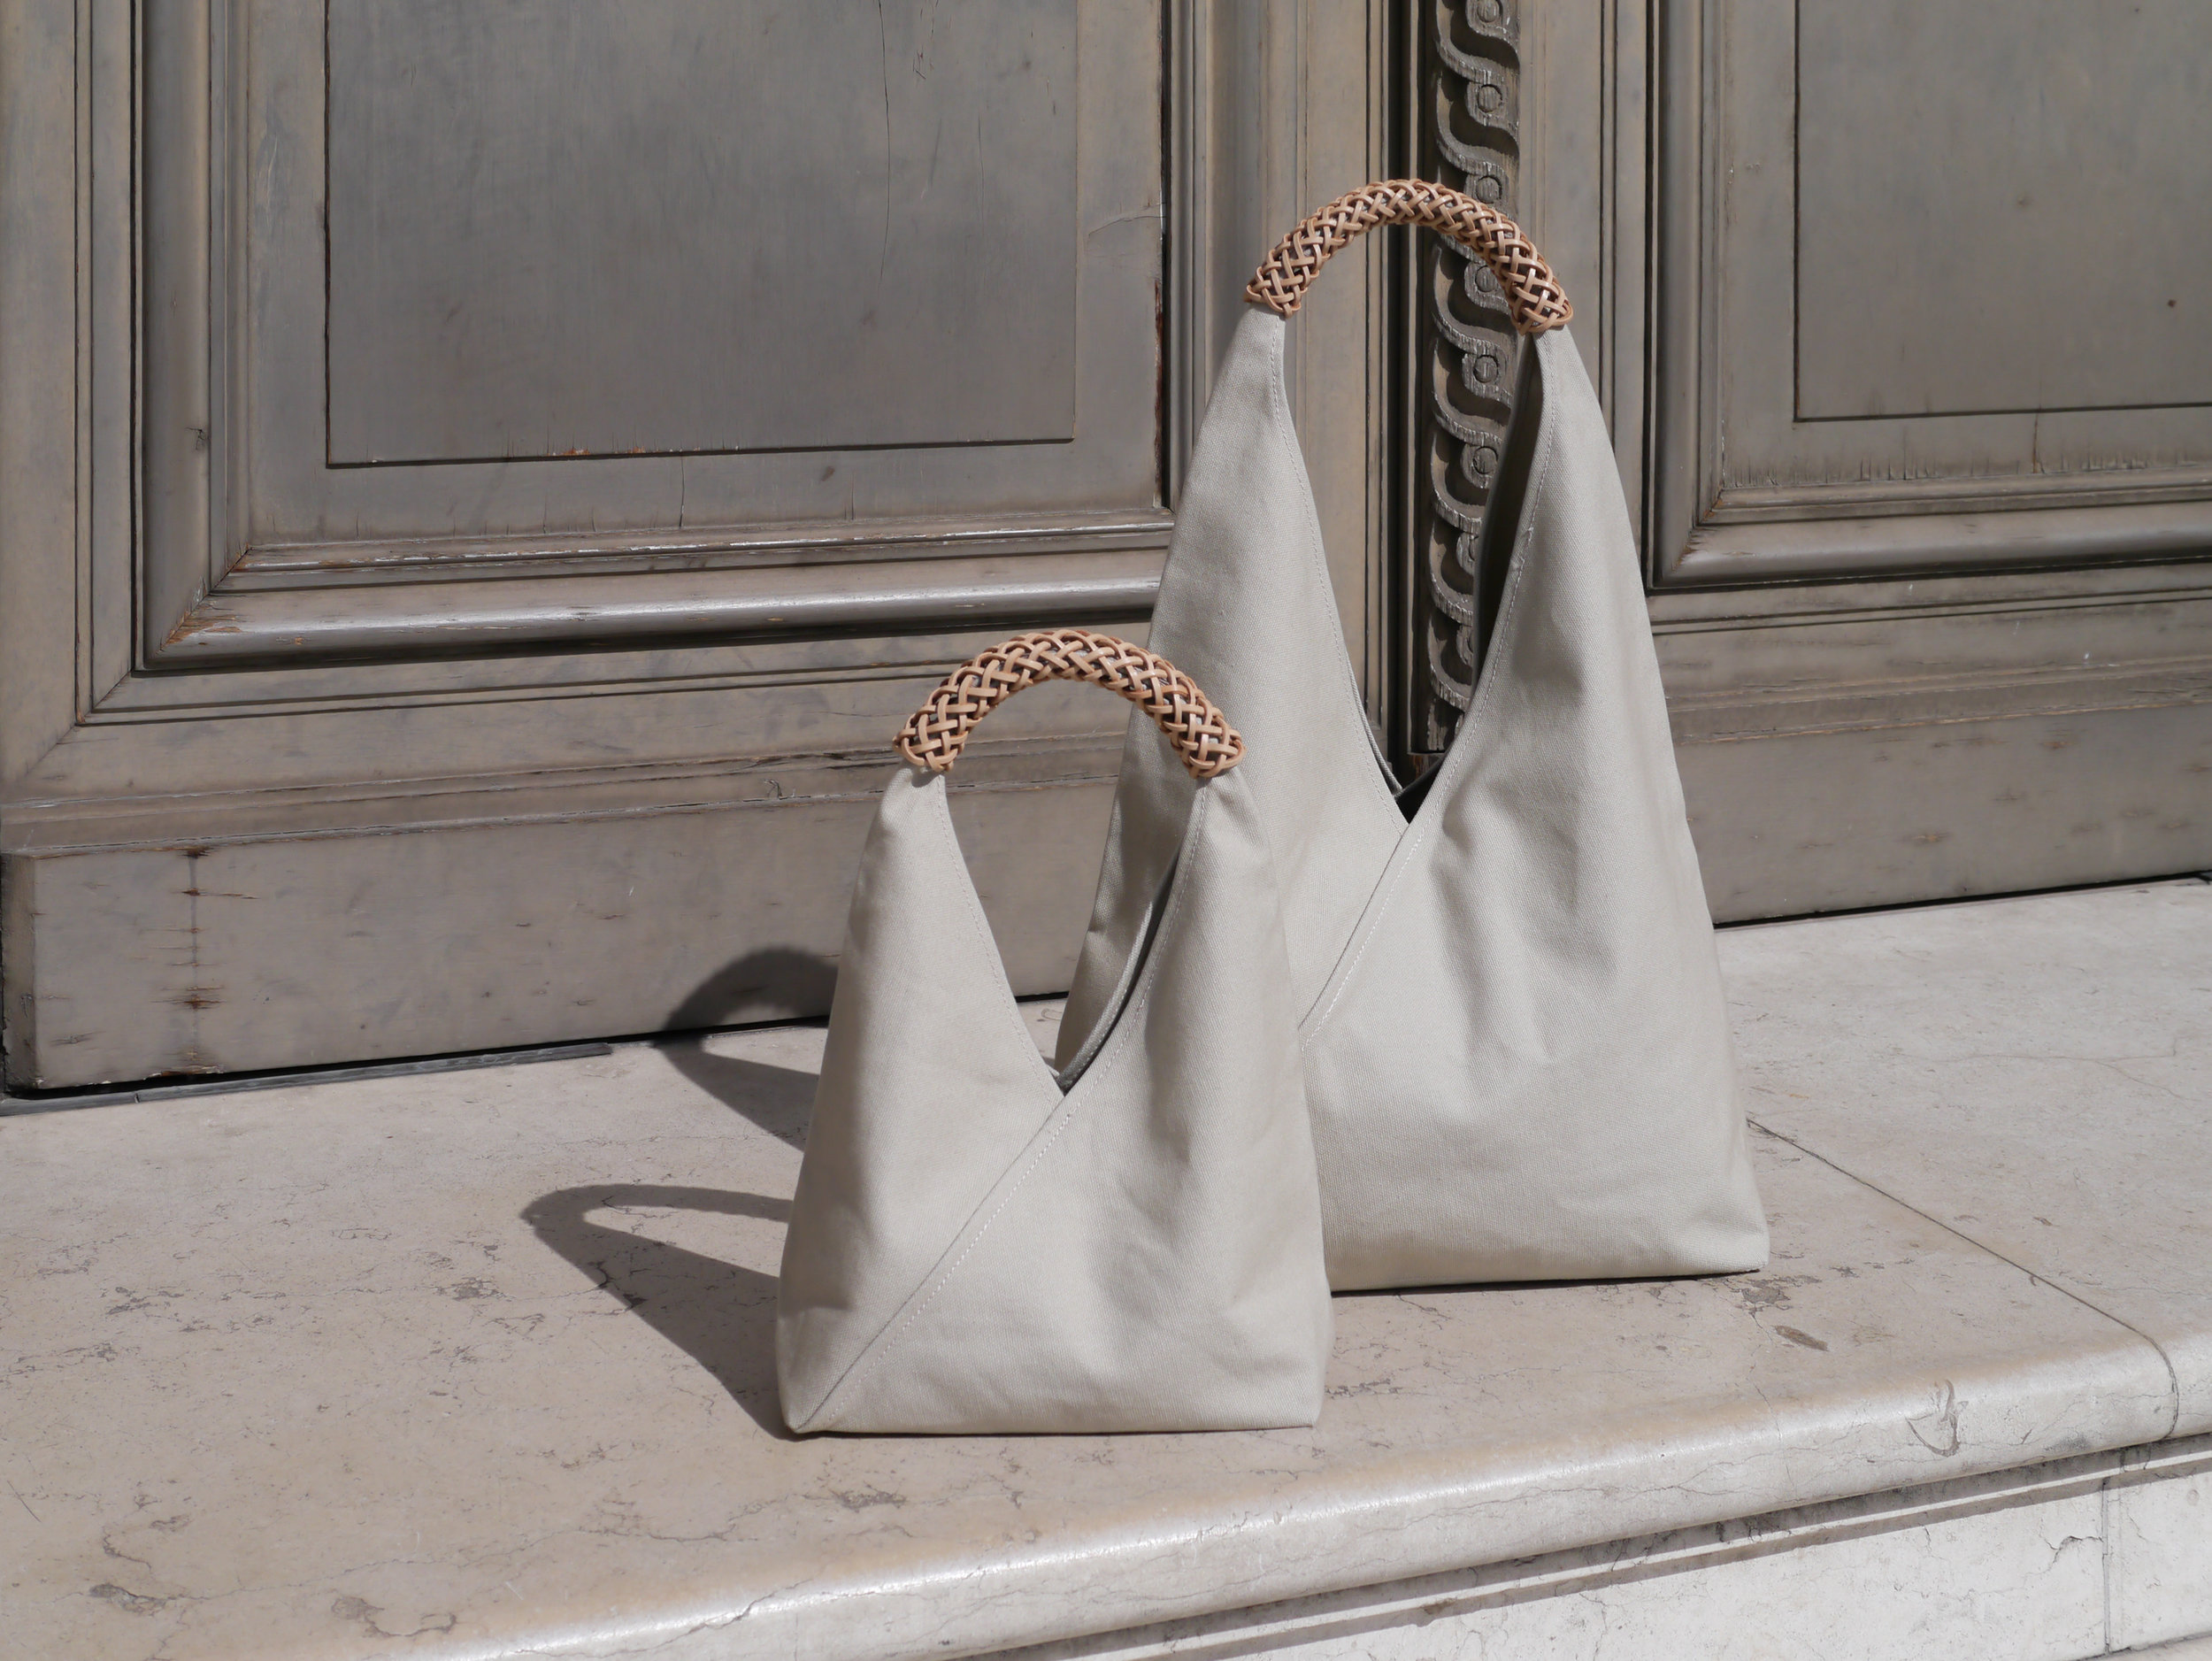 Woven Triangle Bags - Glad to find the colour and structure of the triangle bags fits nice with Musée du Louvre.